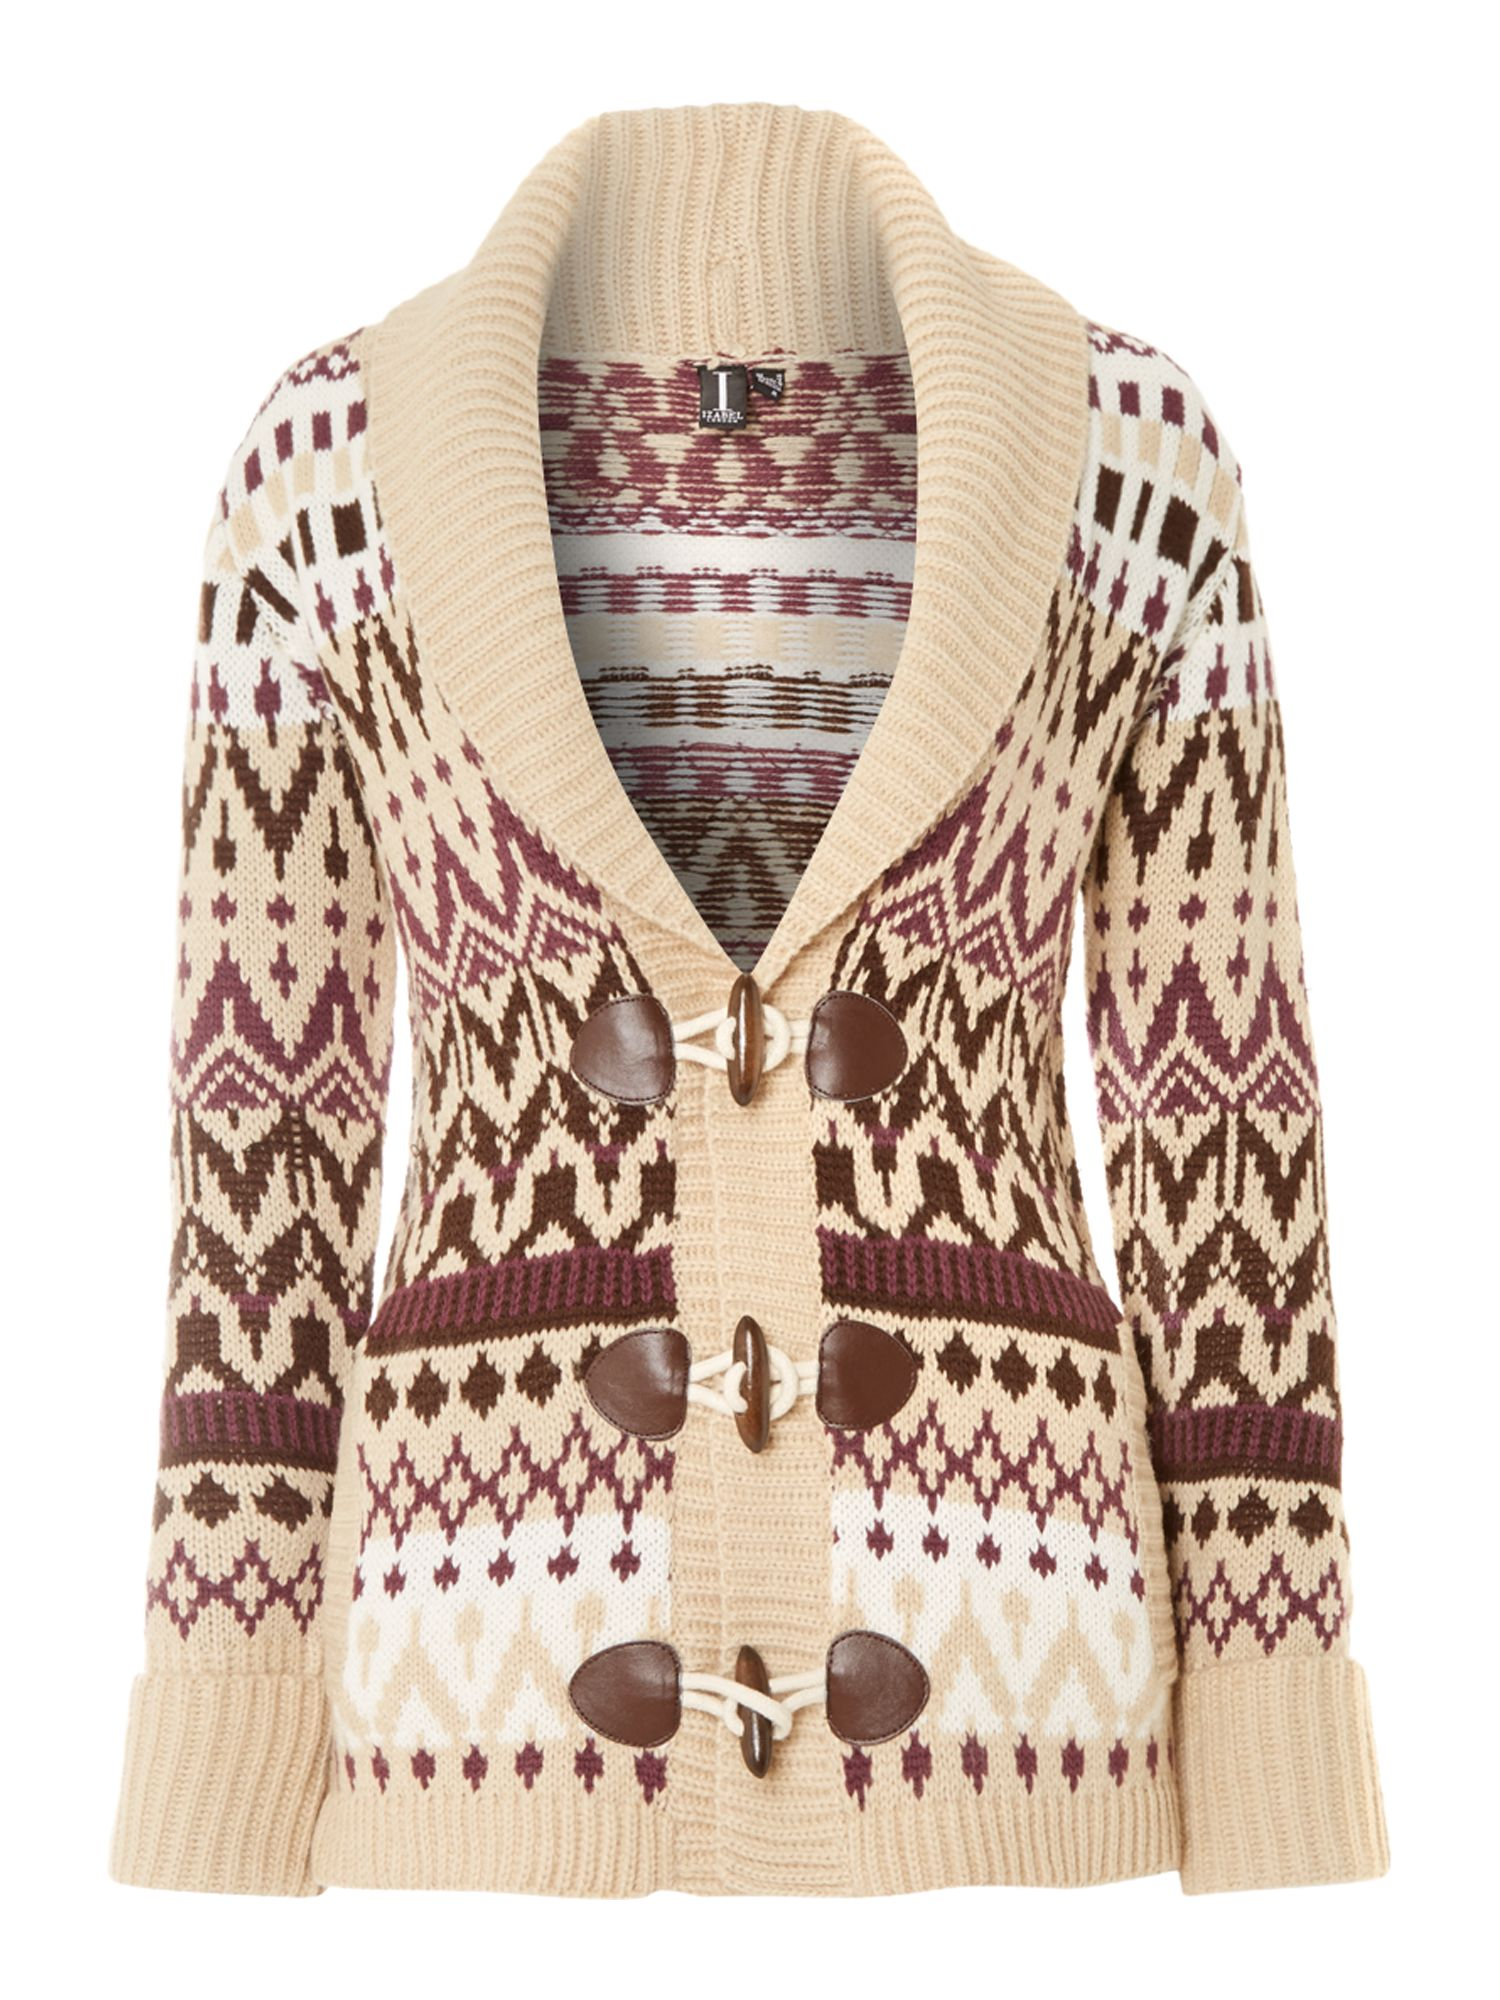 V neck cardigan in fairisle print